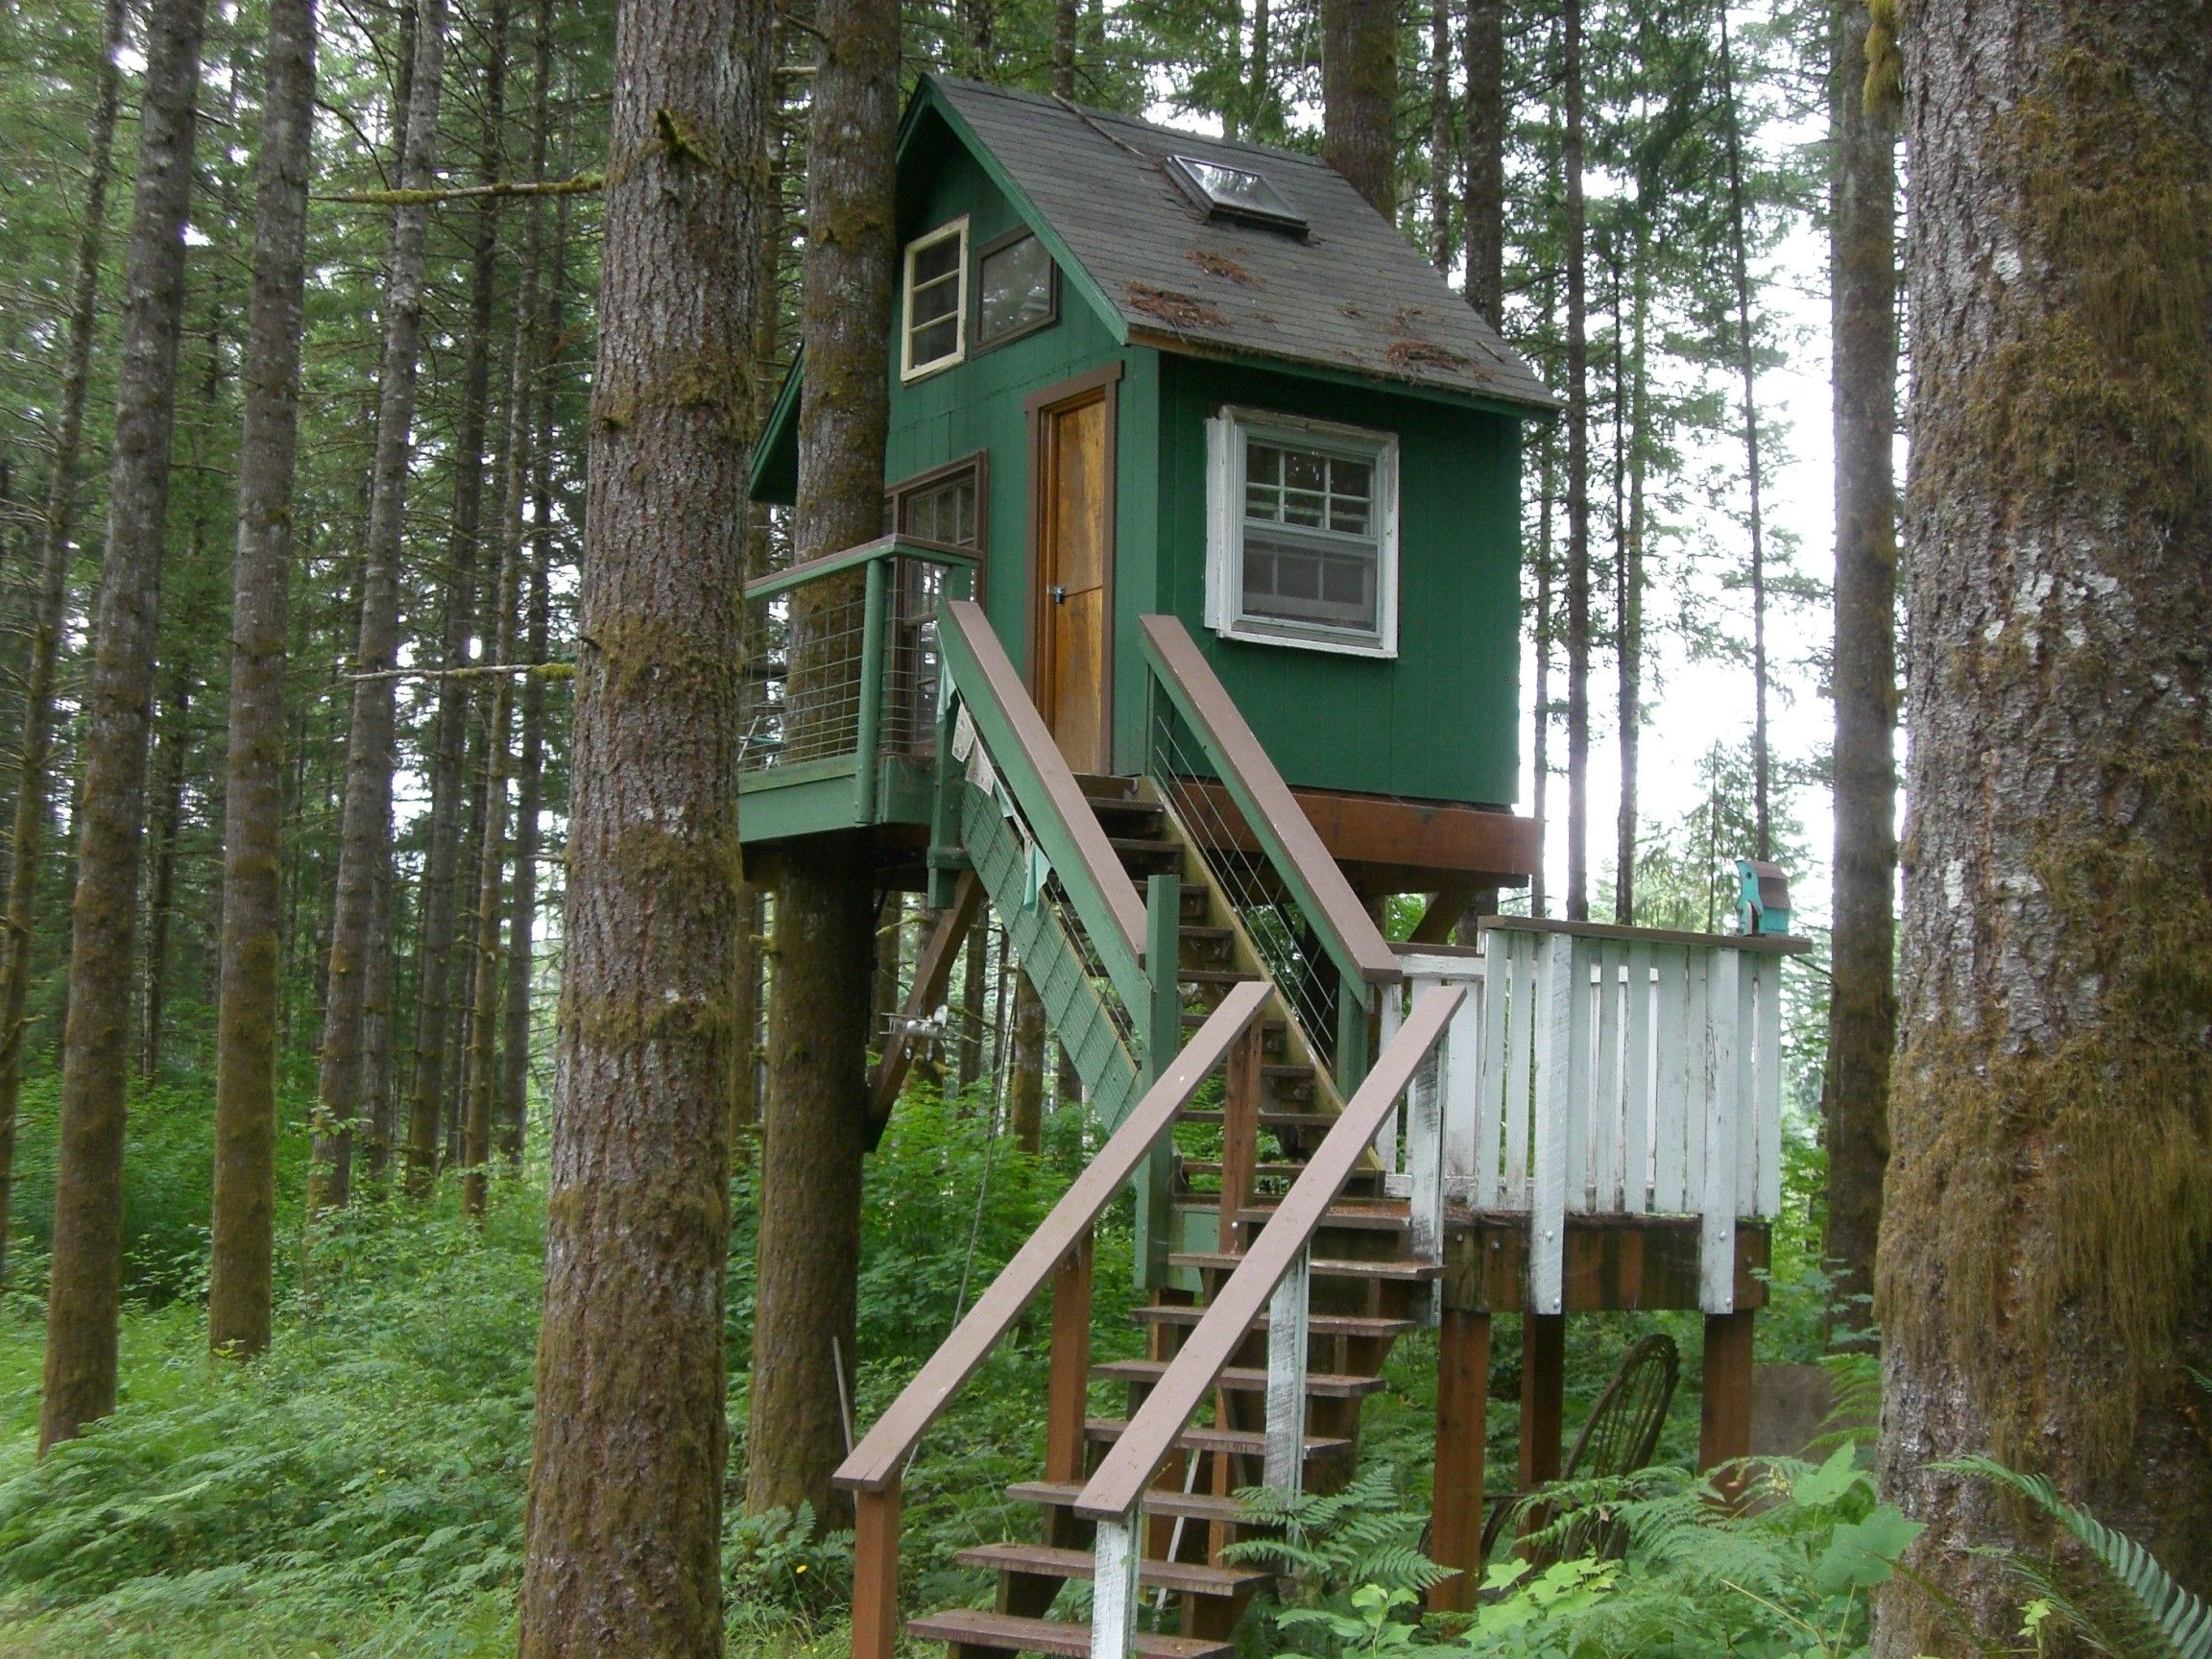 Simple Tree House Plans For Kids fun tree house plans for kids with green wooden exterior wall